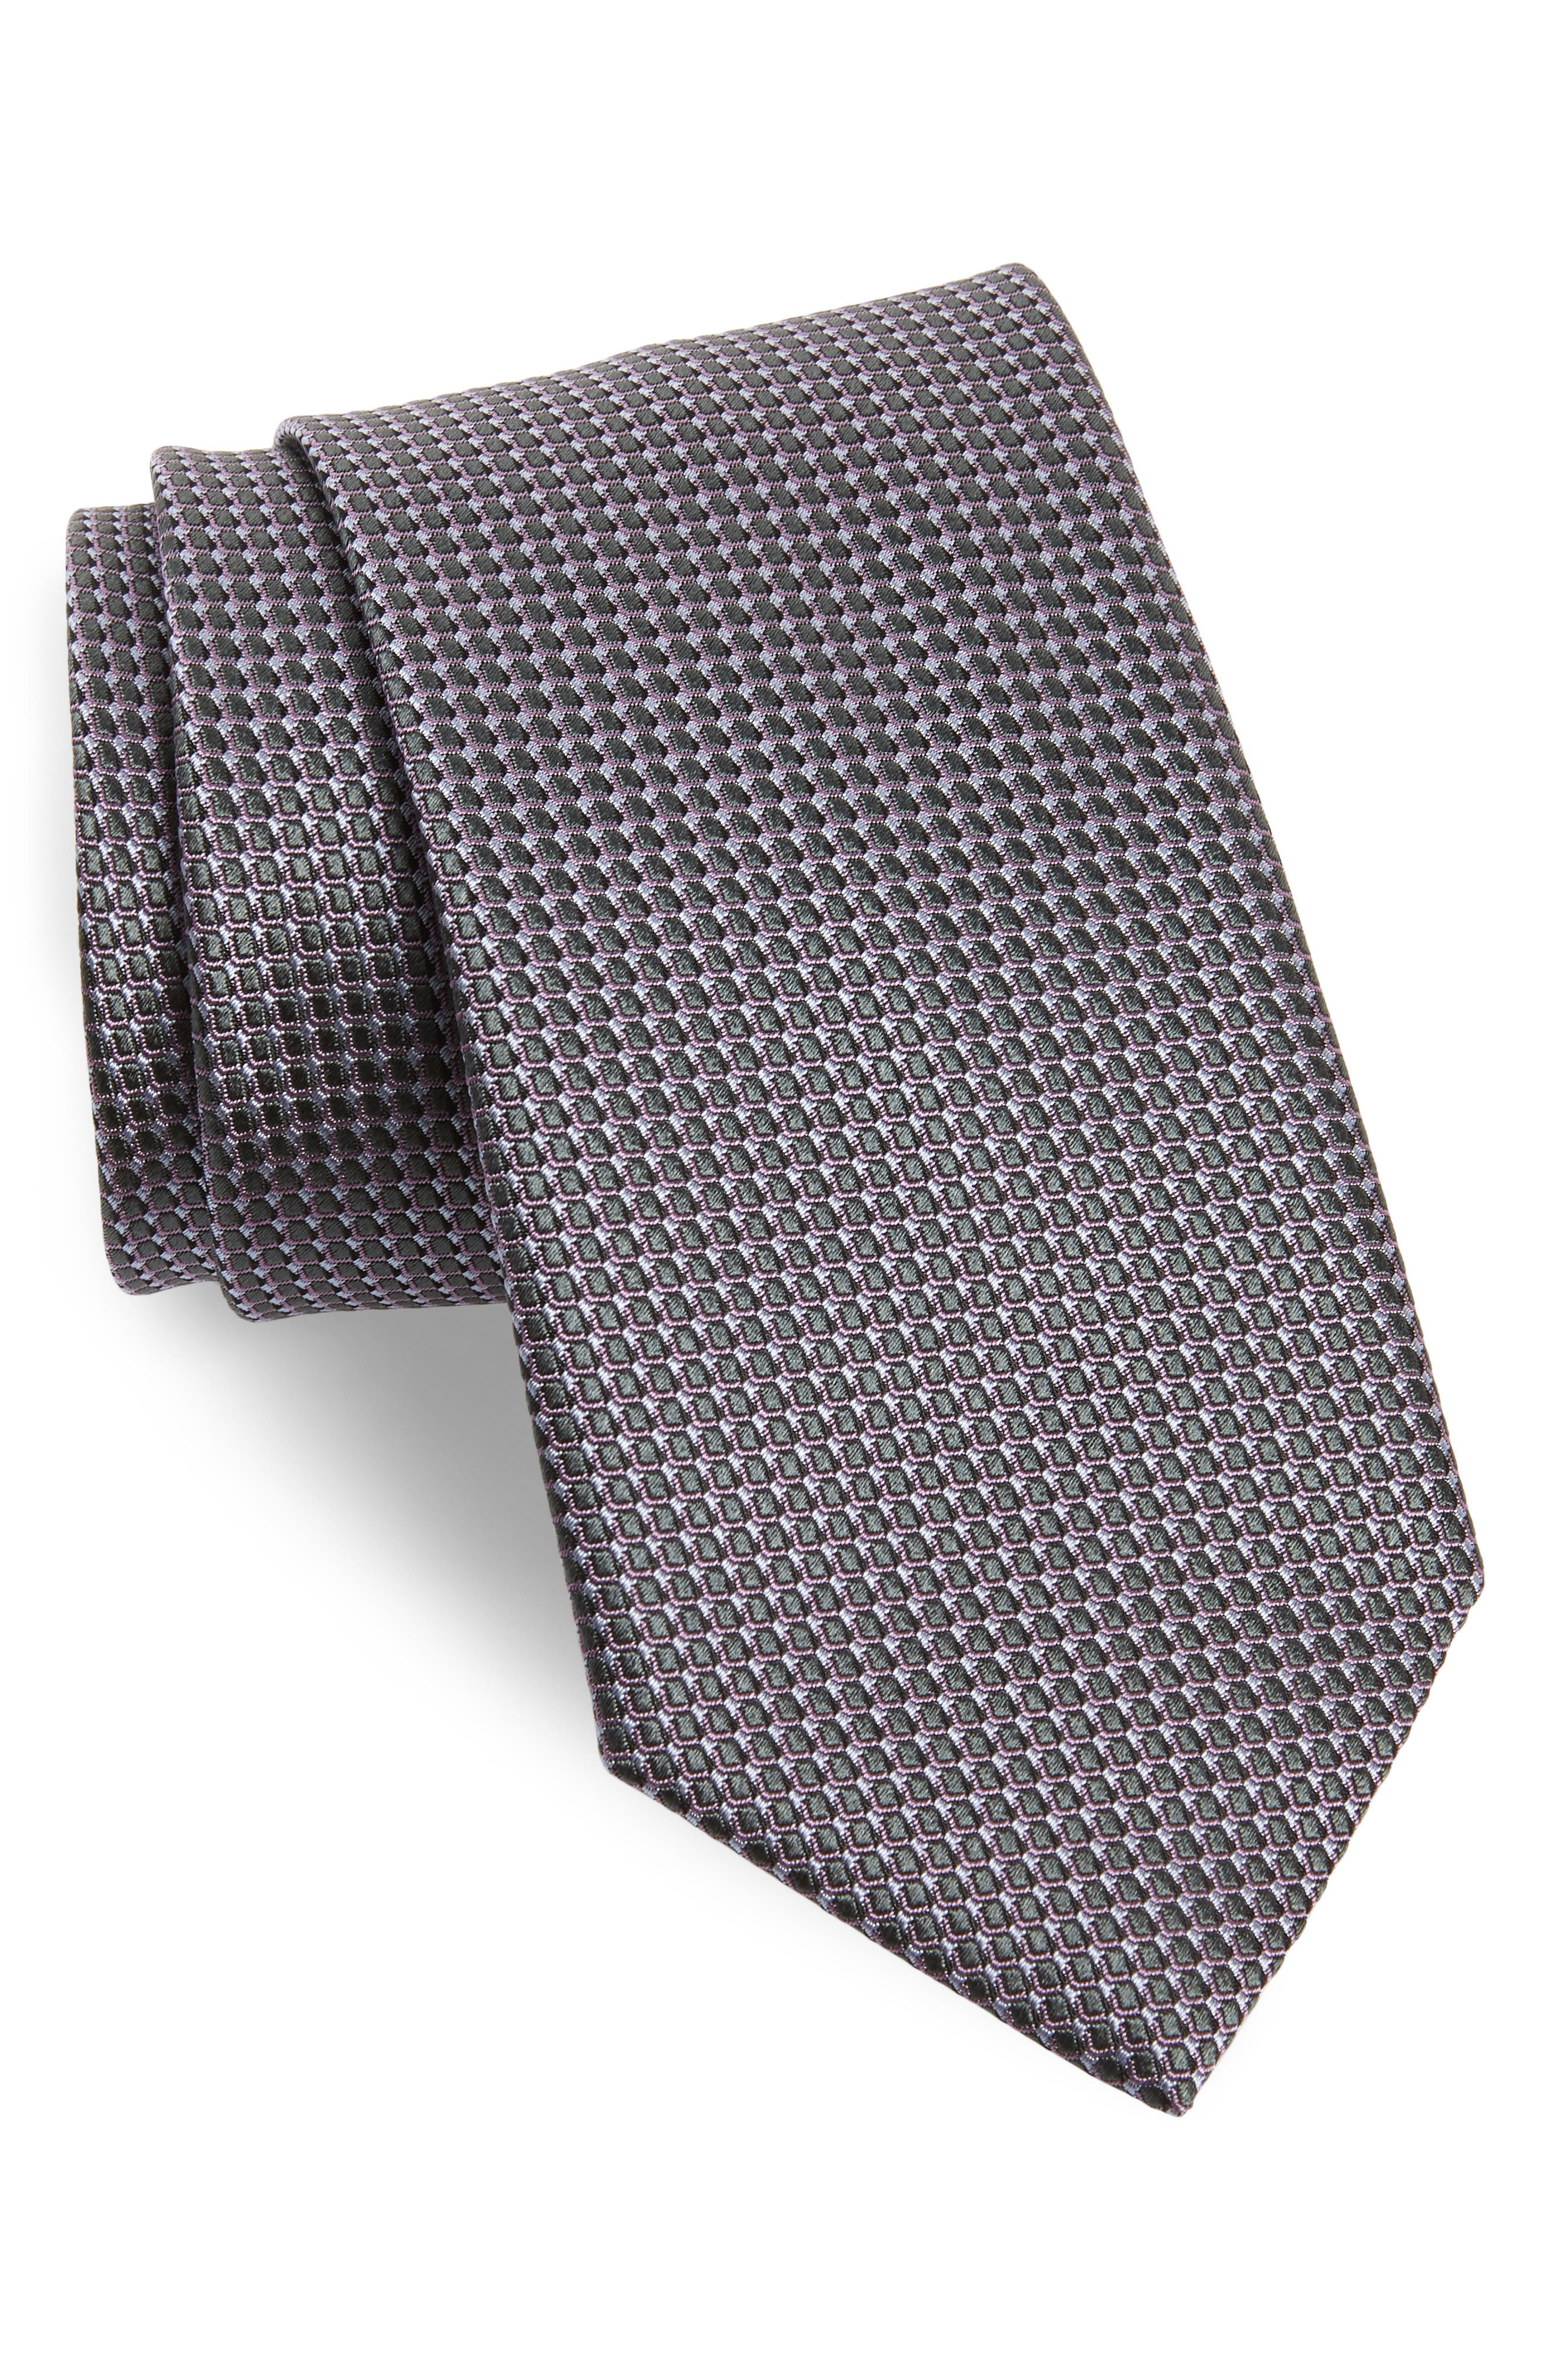 Solid Silk Tie,                             Main thumbnail 1, color,                             070